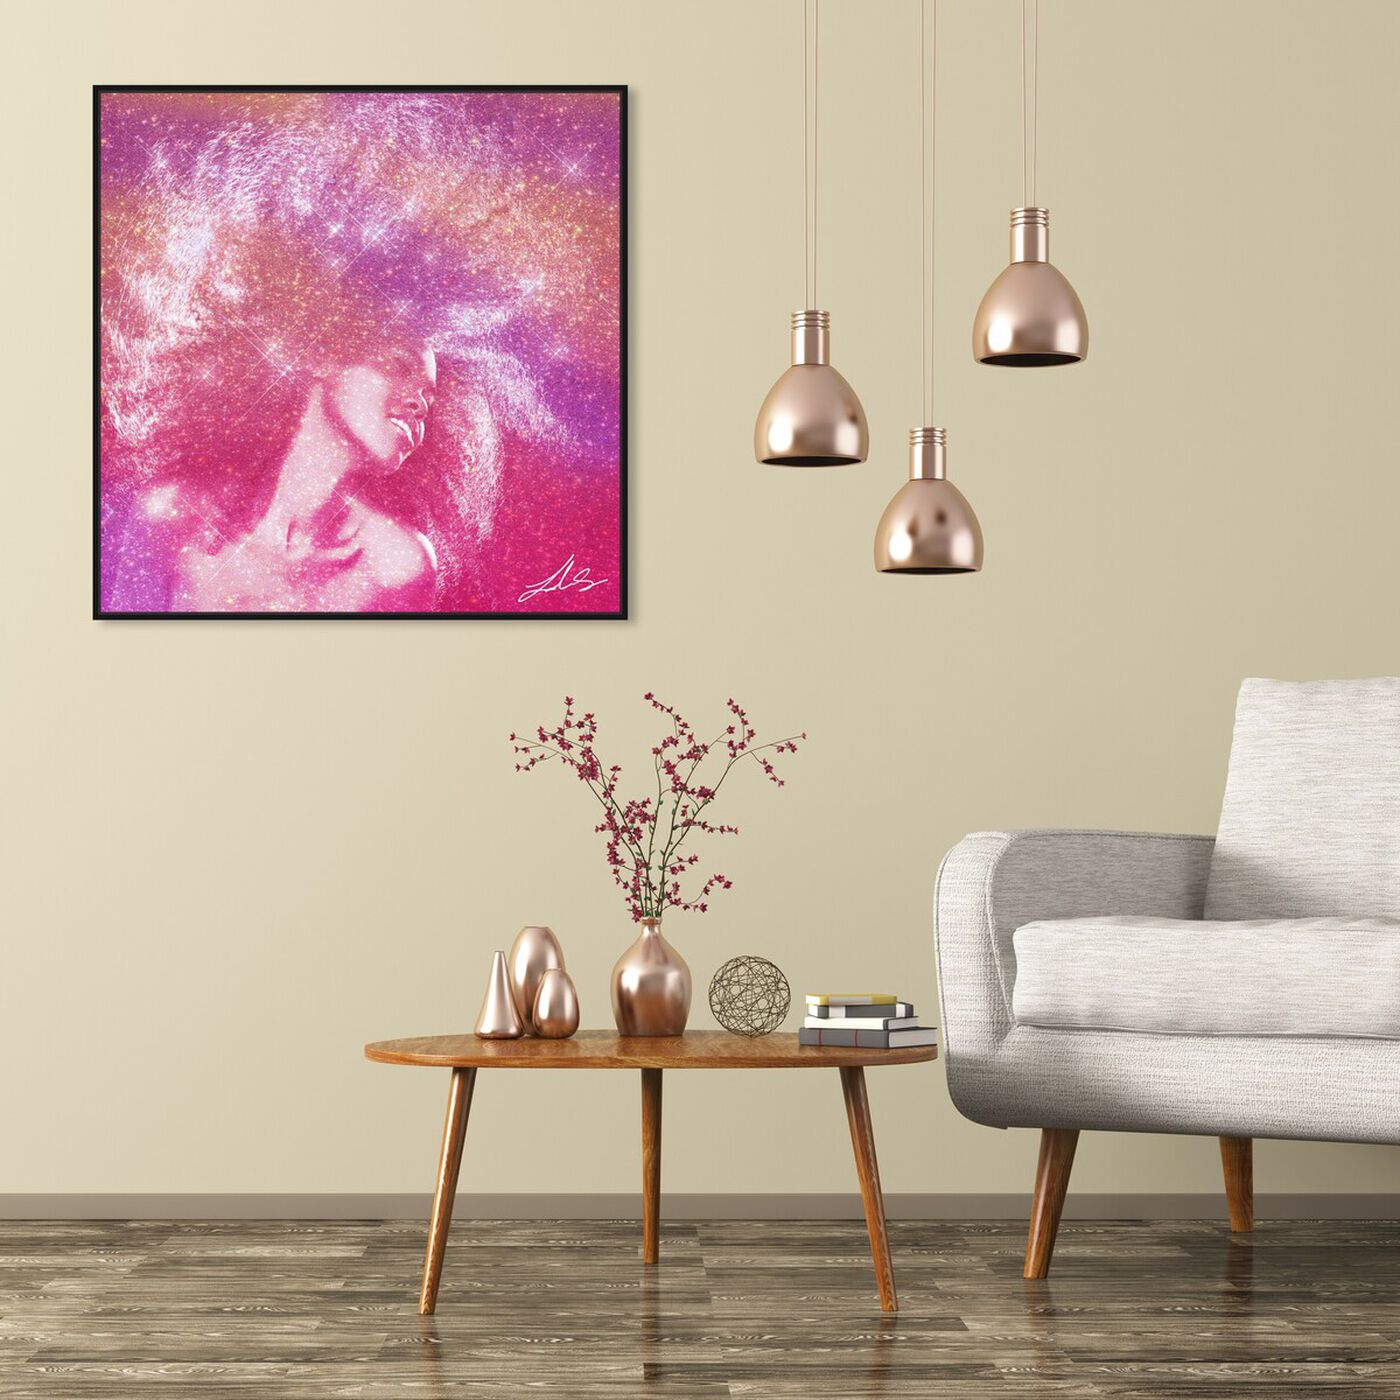 Hanging view of Wild Fro Feelin featuring fashion and glam and hairstyles art.